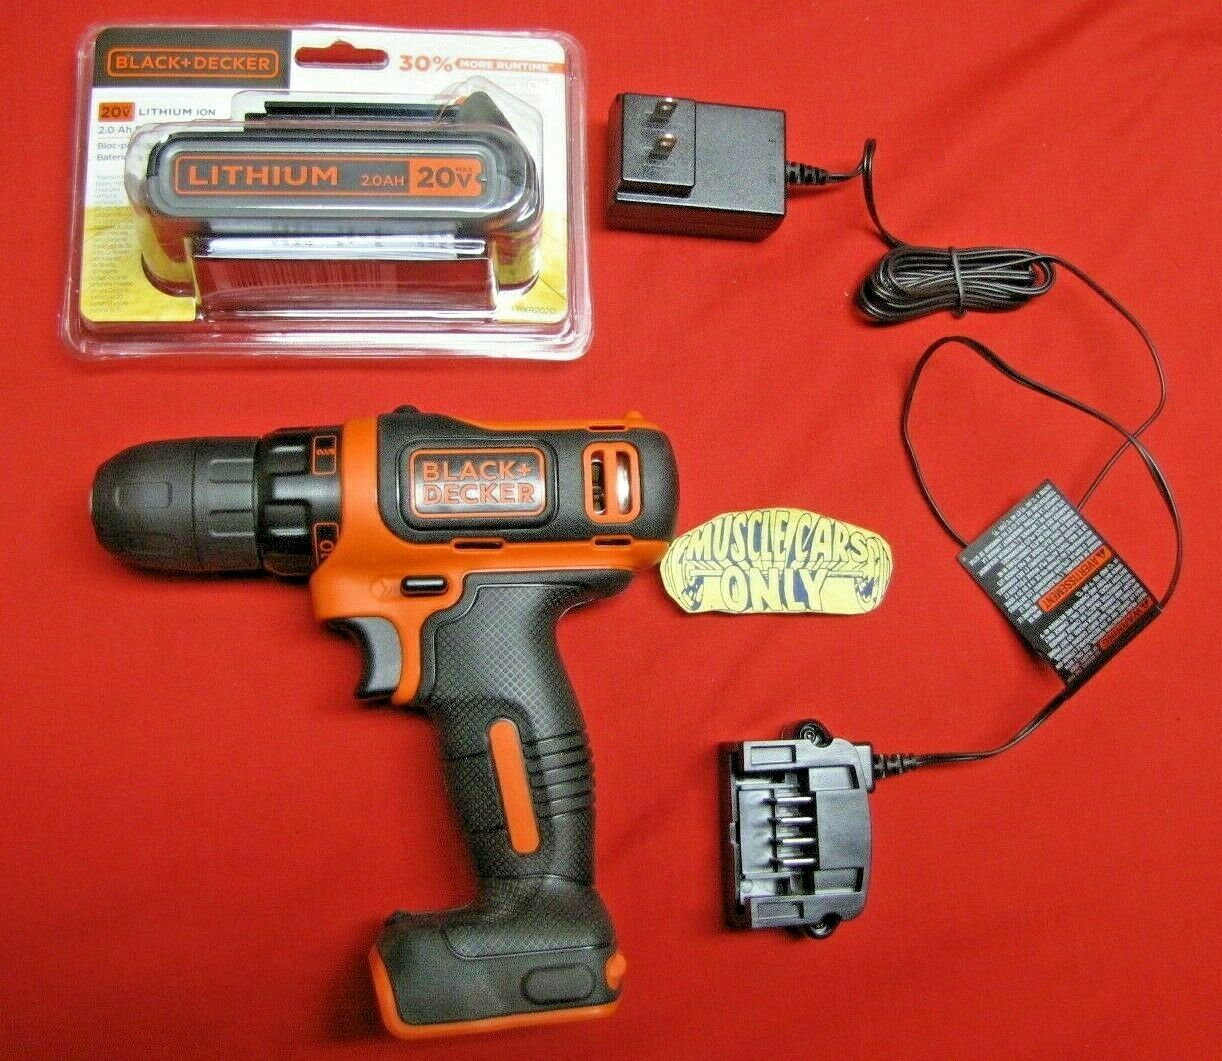 BDCDD12C musclecarsonly_gmpartsstore Black & Decker Drill/Driver With Lithium 12 Volt Battery & Charger BDCDD12C